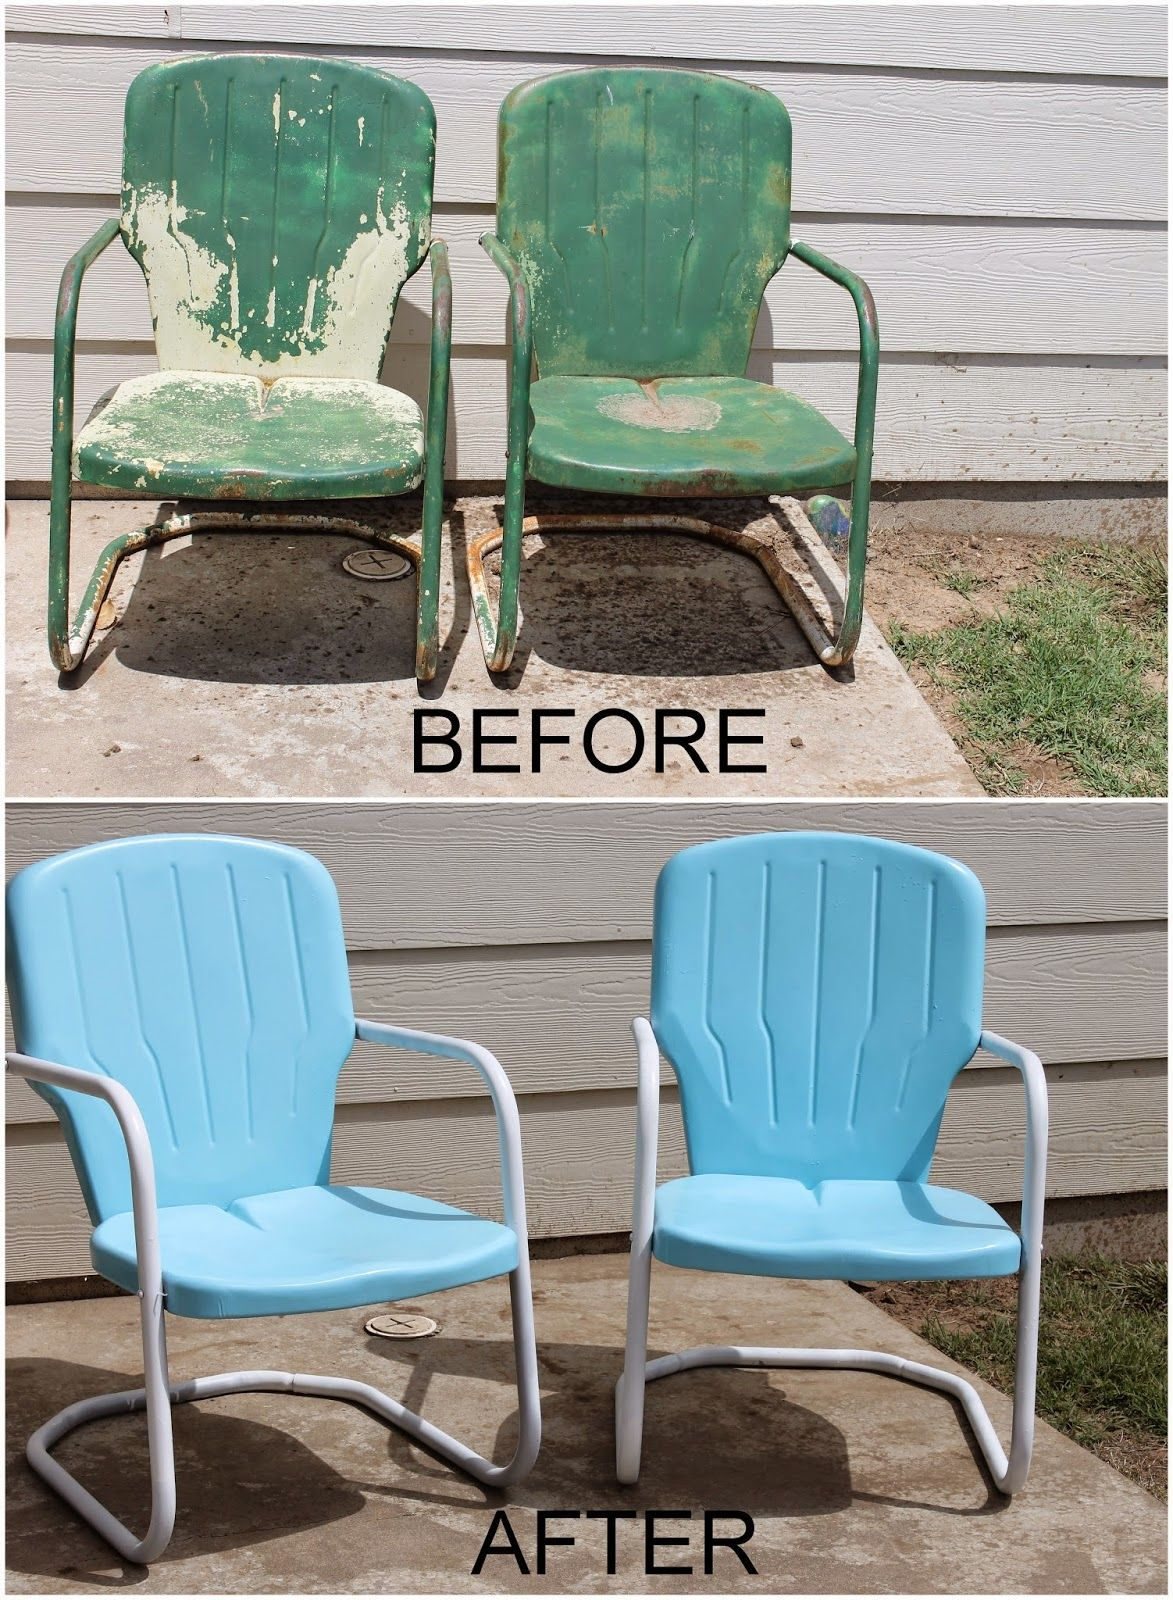 Repaint Old Metal Patio Chairs Diy Paint Outdoor Motel